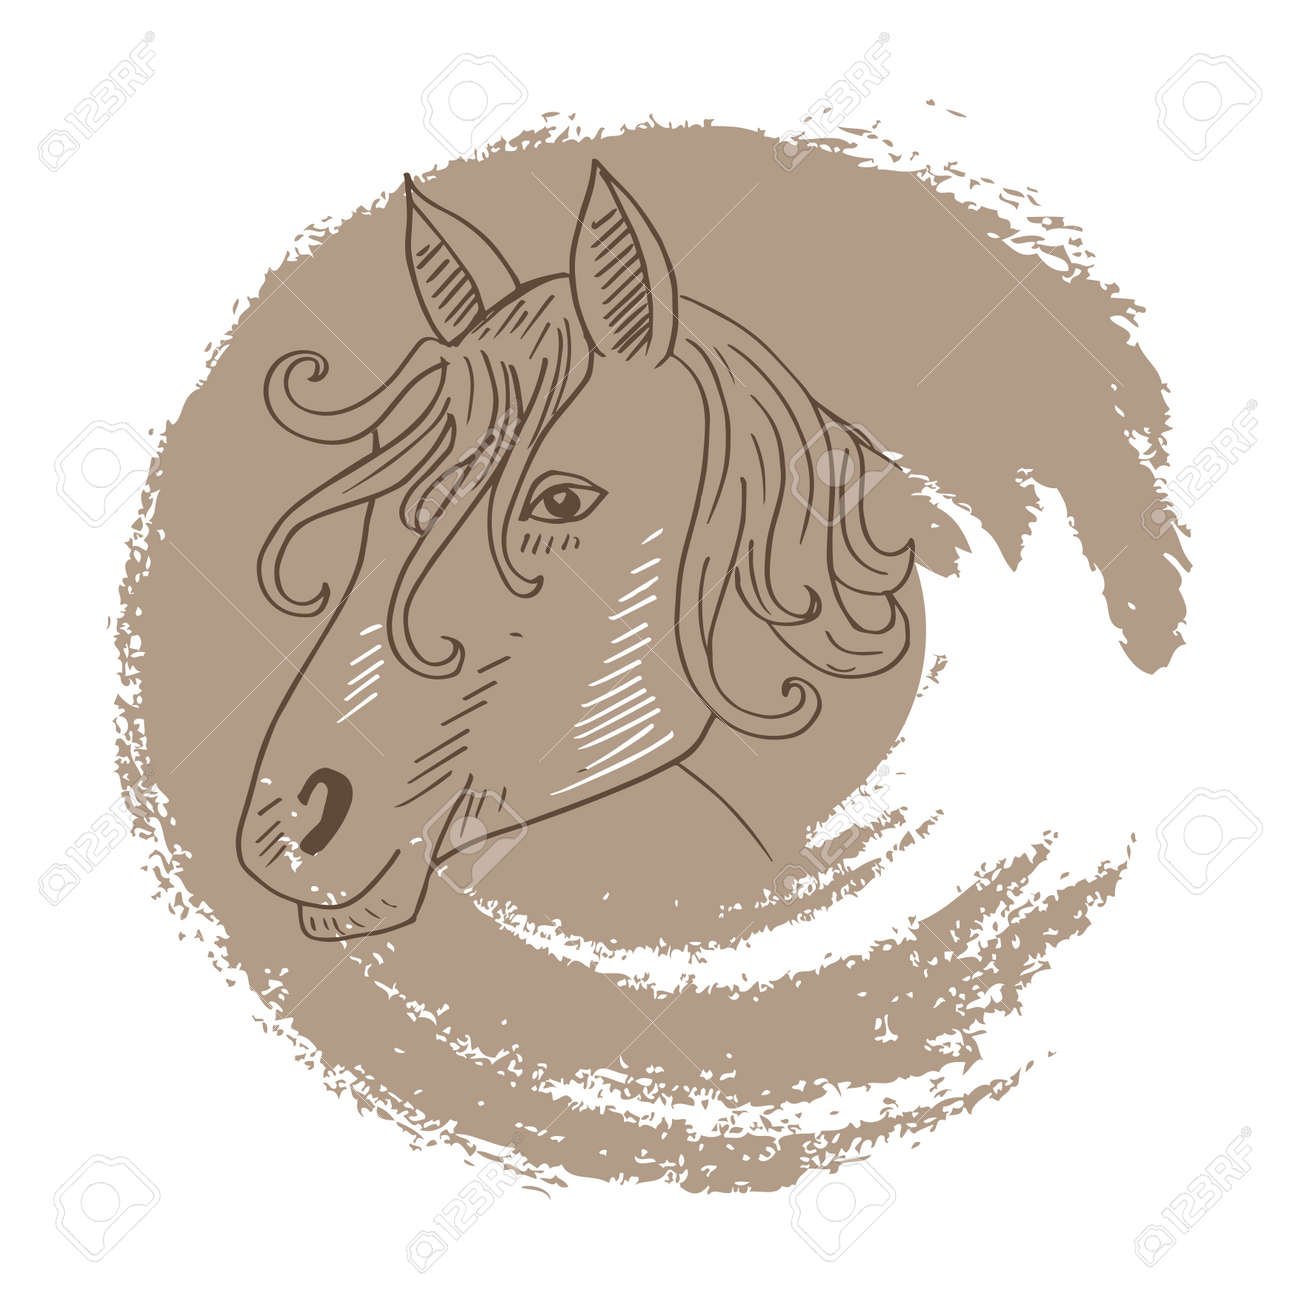 Horse Face Hand Drawing Illustration Royalty Free Cliparts